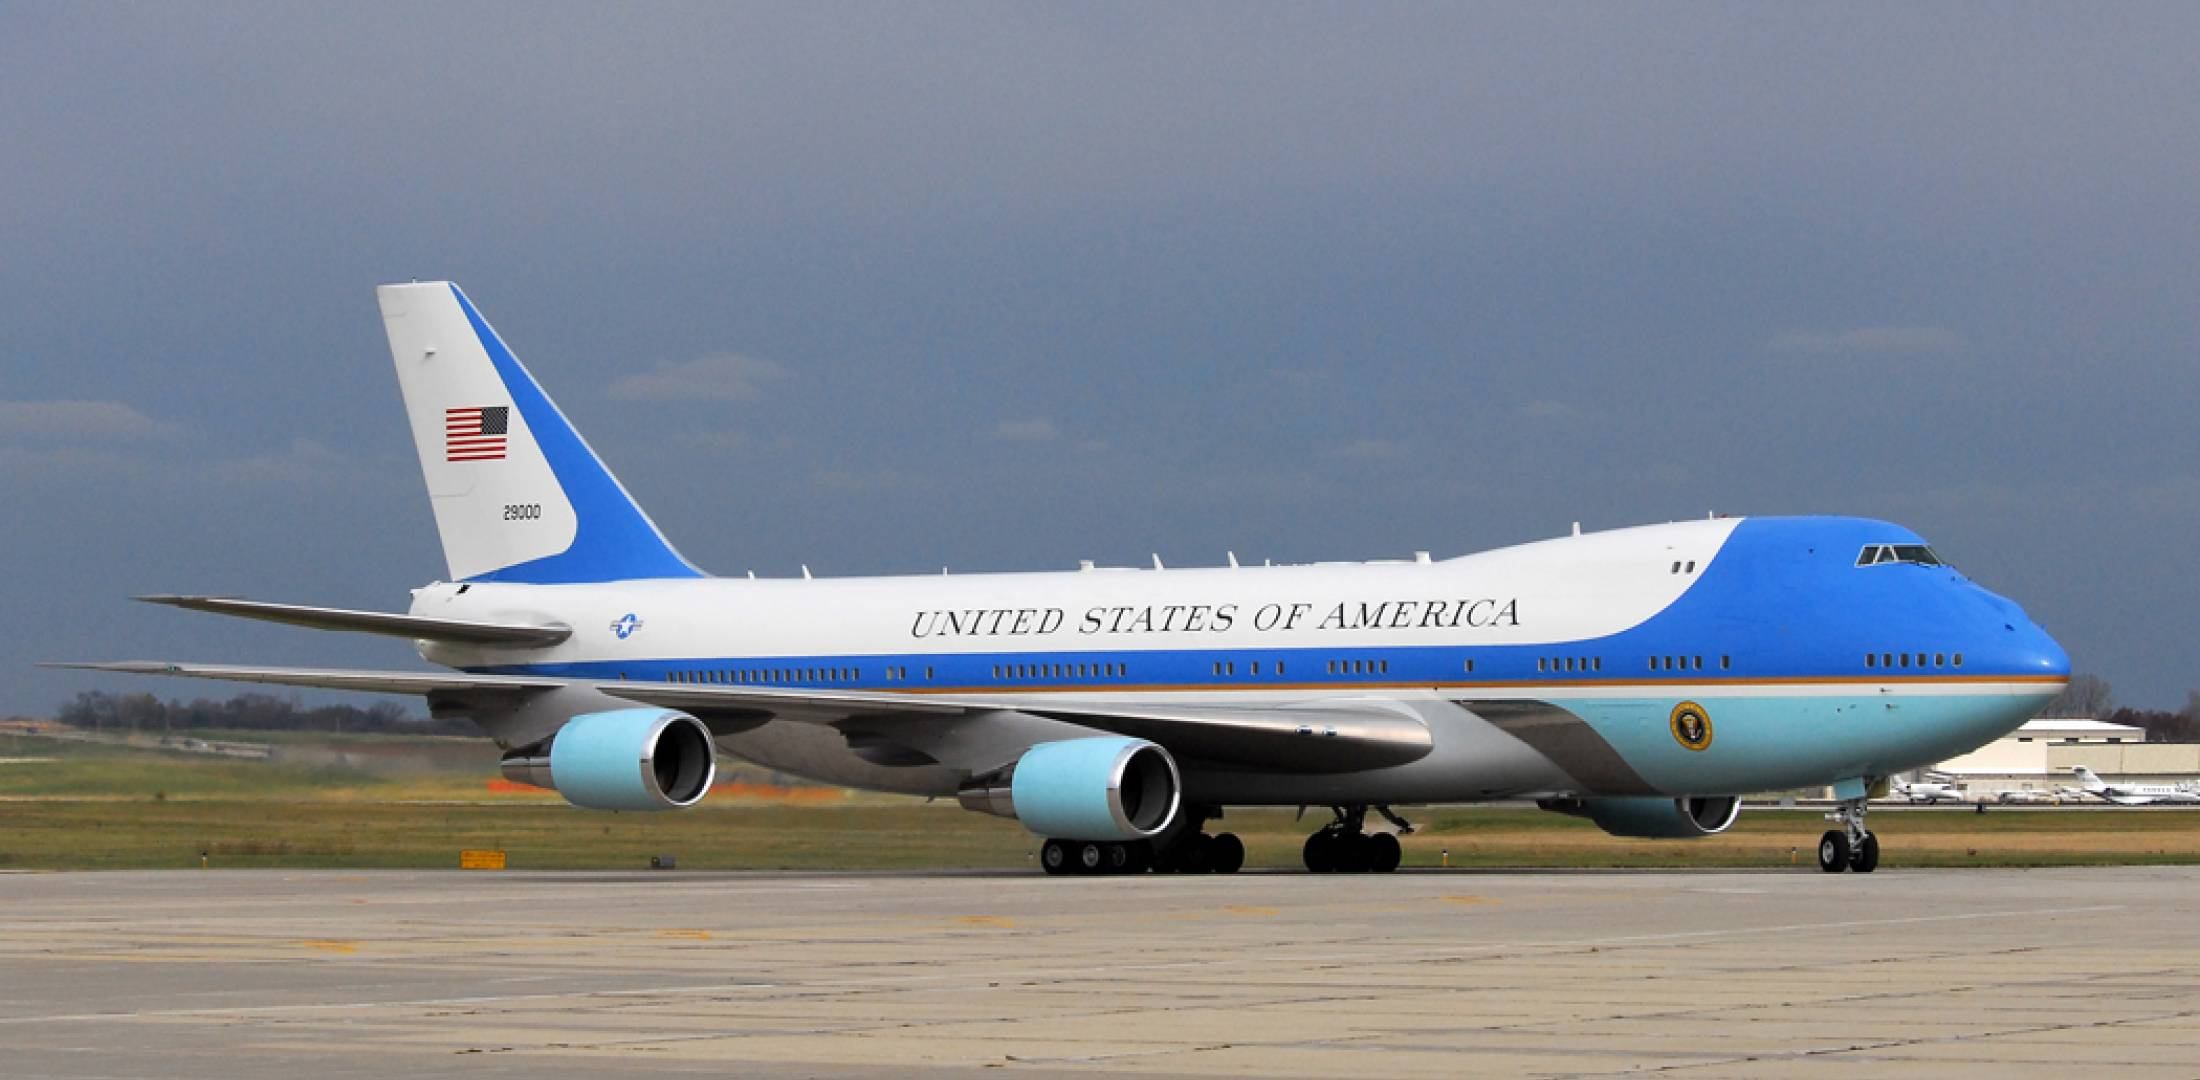 air force one 2018-8-17  air force one is the air traffic control callsign of any united states air force plane carrying the president of the united statesthe same rule applies to navy one, marine one, army one and other military subcommand units.